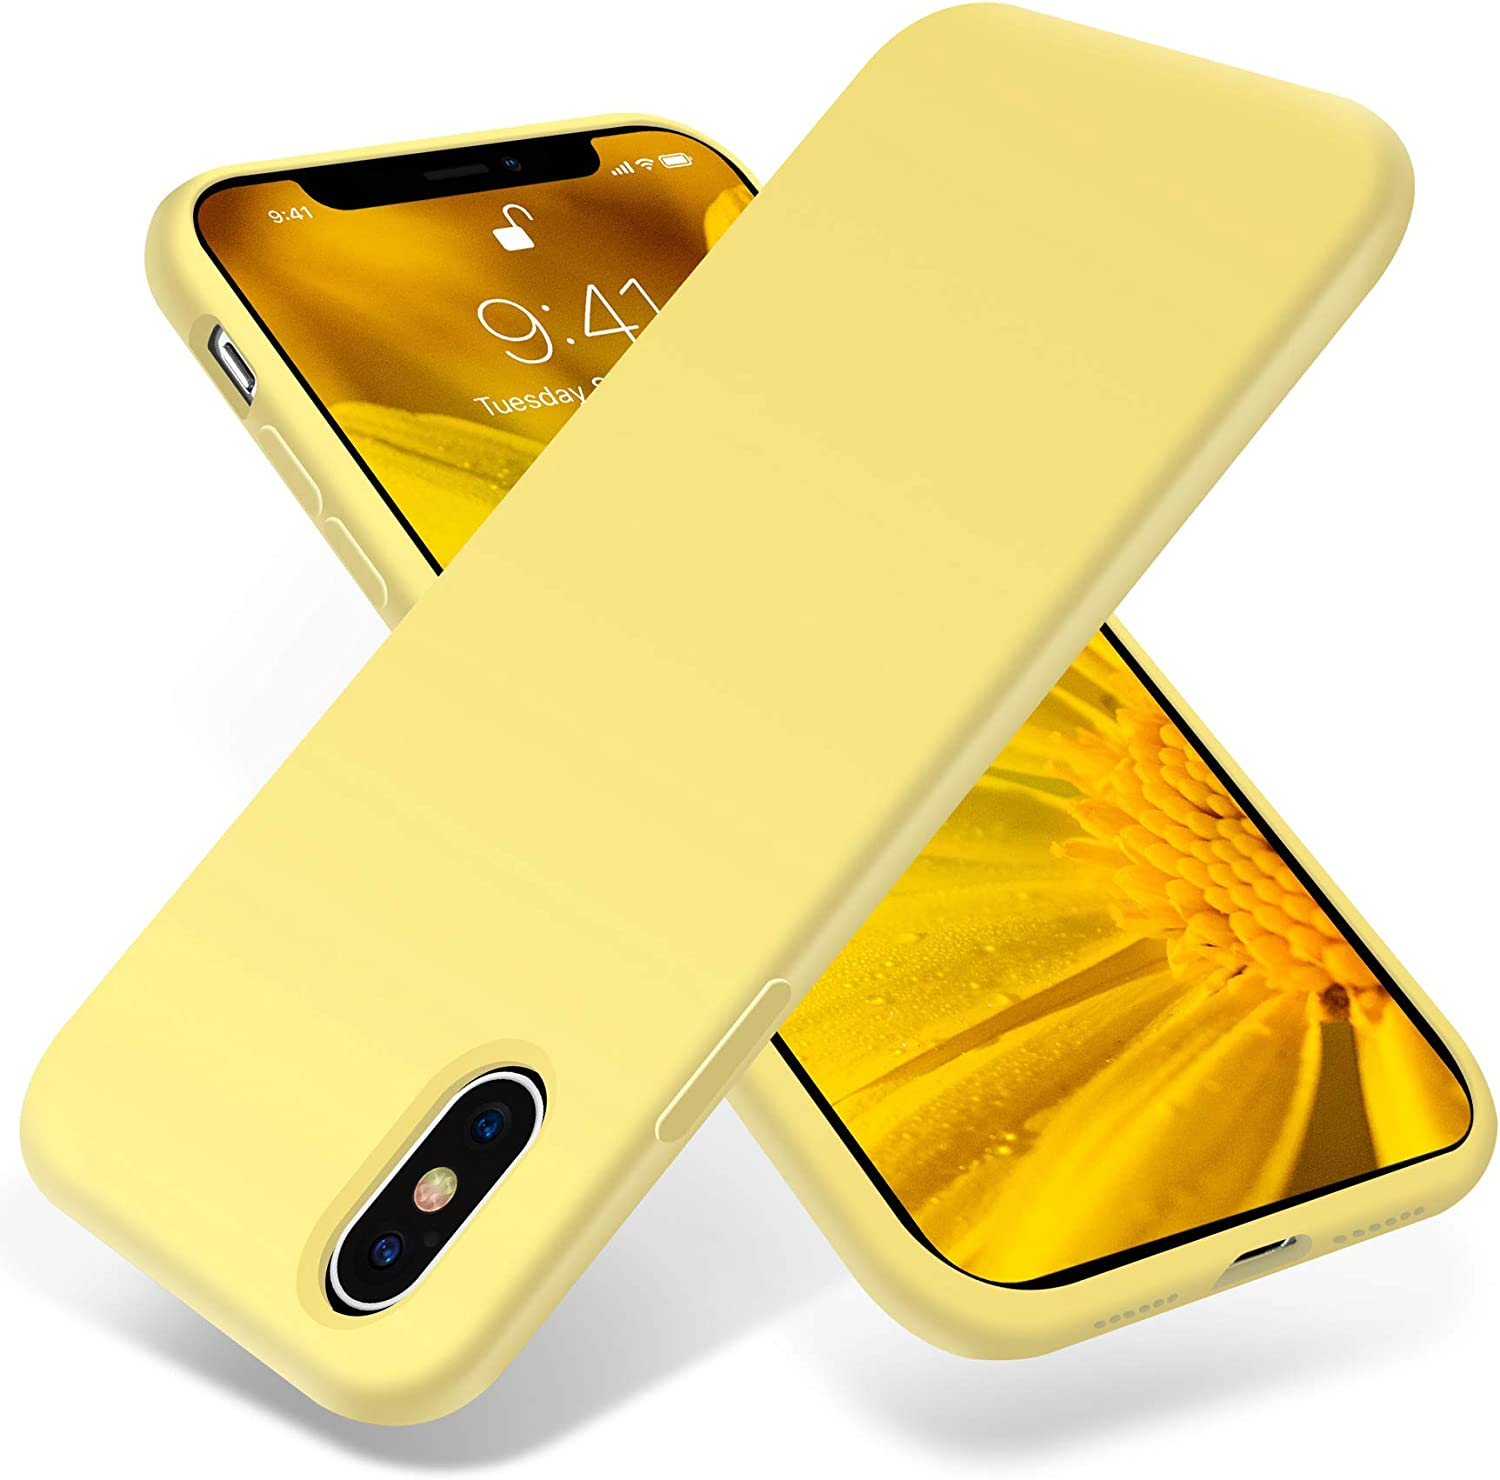 OTOFLY for iPhone X Case ONLY, [Silky and Soft Touch Series] Premium Soft Silicone Rubber Full-Body Protective Bumper Case Compatible with Apple iPhone X(ONLY) - Yellow